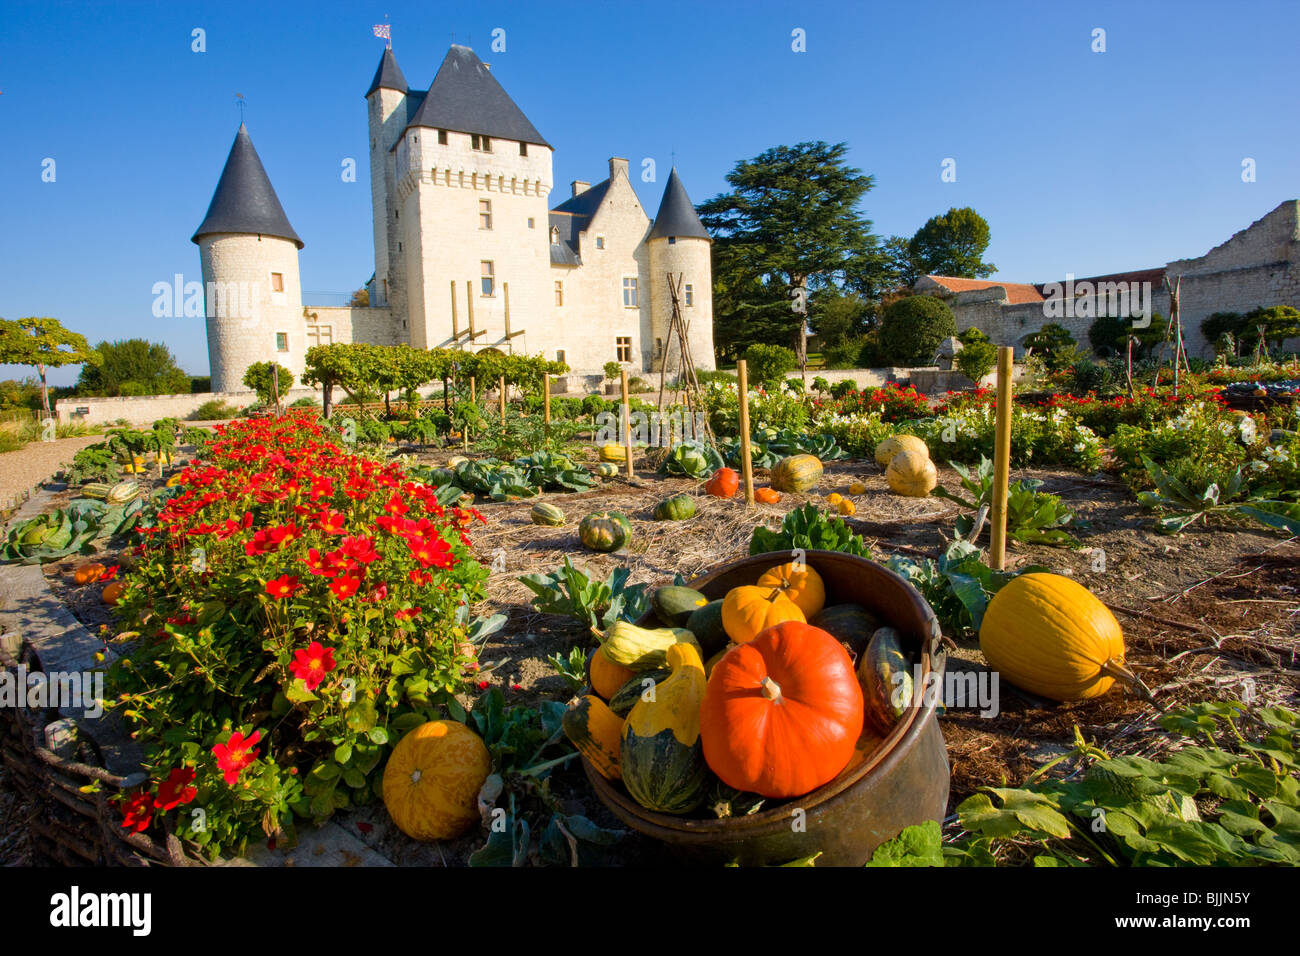 Rivau Castle and gardens, Loire Valley, France, UNESCO World Heritage Site, built 15th Century - Stock Image